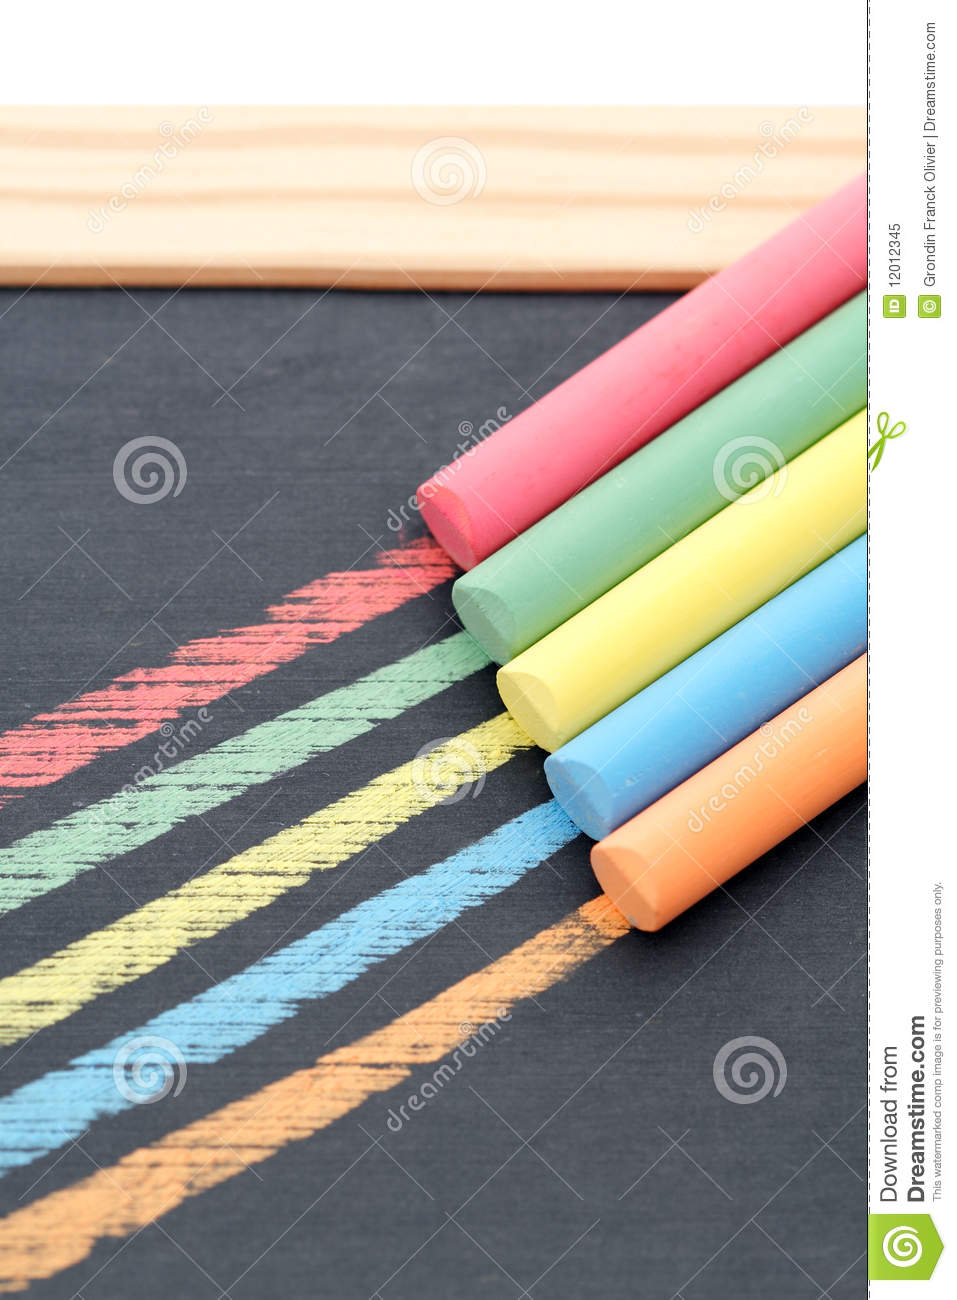 Colored chalks